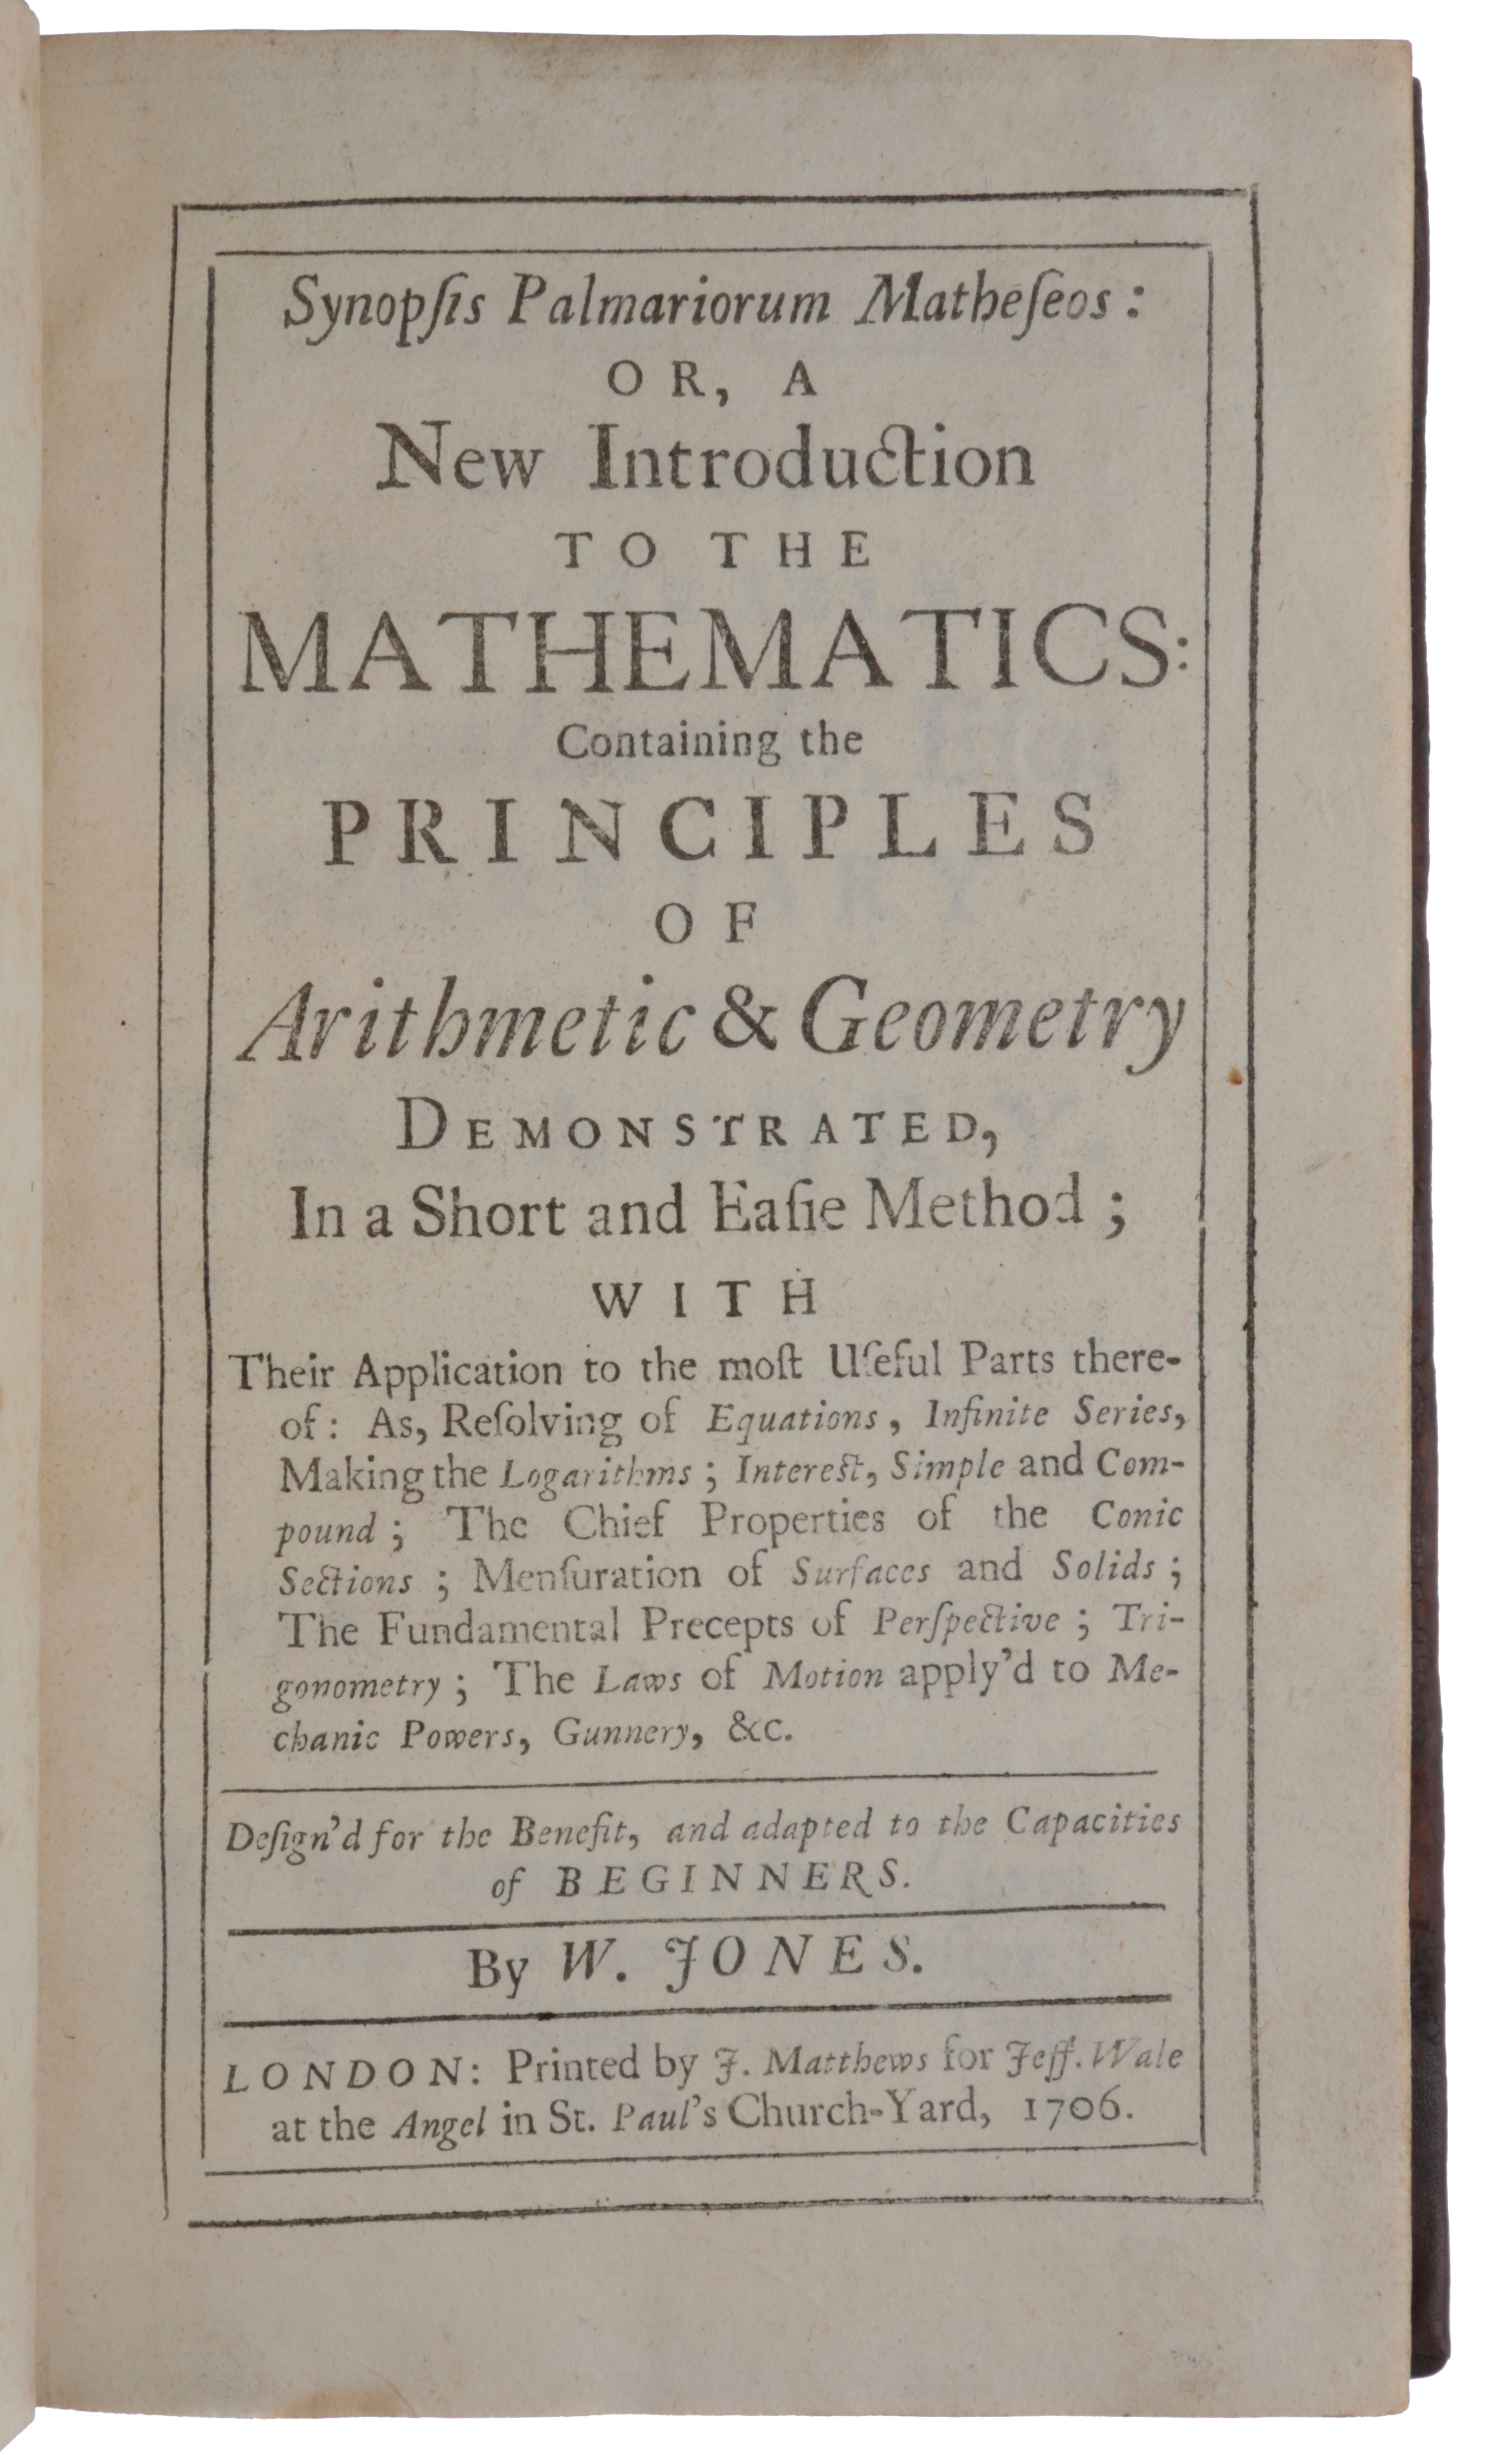 Synopsis palmariorum matheseos: or, A new introduction to the mathematics: Containing the principles of arithmetic & geometry demonstrated, in a short and easie method; with their application to the most useful parts thereof: as, resolving of equations, infinite series, making the logarithms; interest, simple and compound; the chief properties of the conic sections; mensuration of surfaces and solids; the fundamental precepts of perspective; trigonometry; the laws of motion apply'd to mechanic powers, gunnery, &c. Design'd for the benefit, and adapted to the capacities of beginners. William JONES.